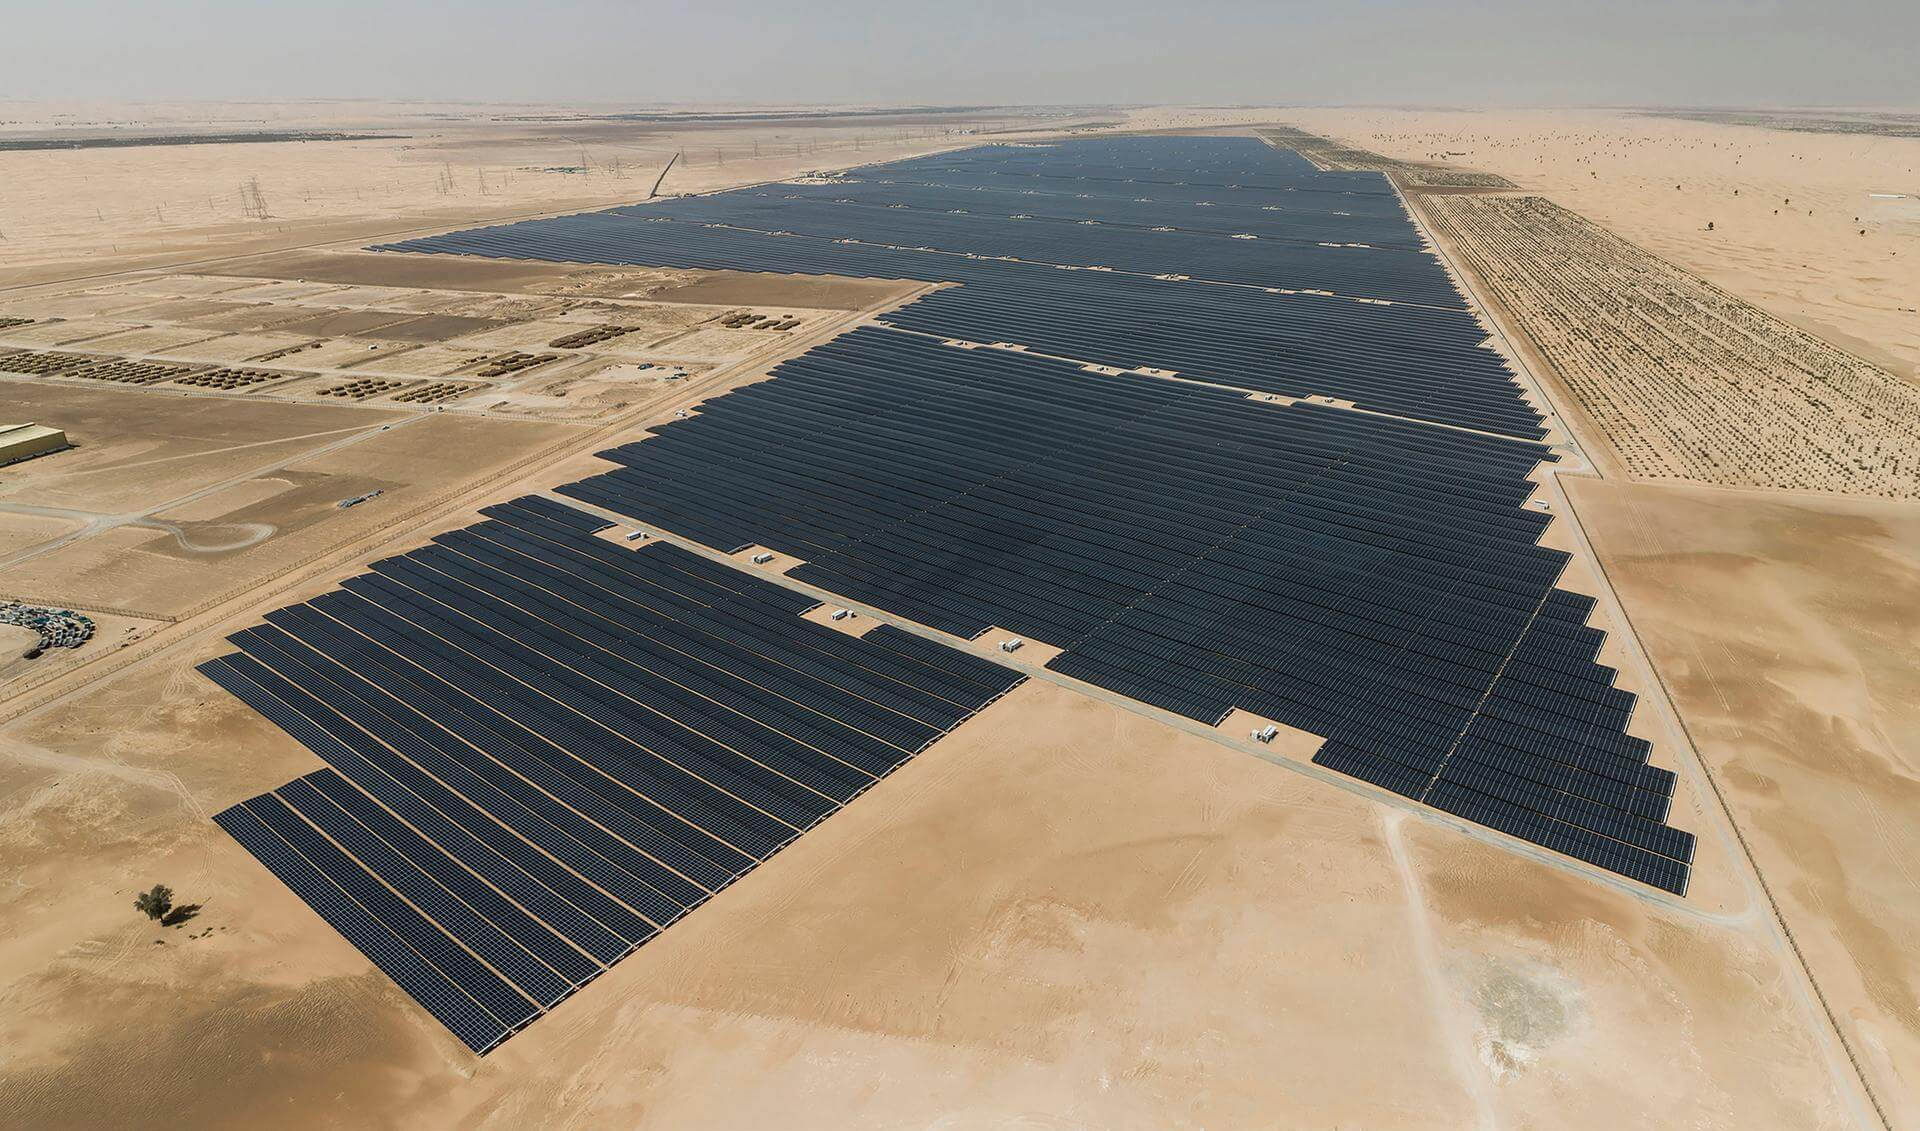 UAE powers on Noor Abu Dhabi, the world's largest solar